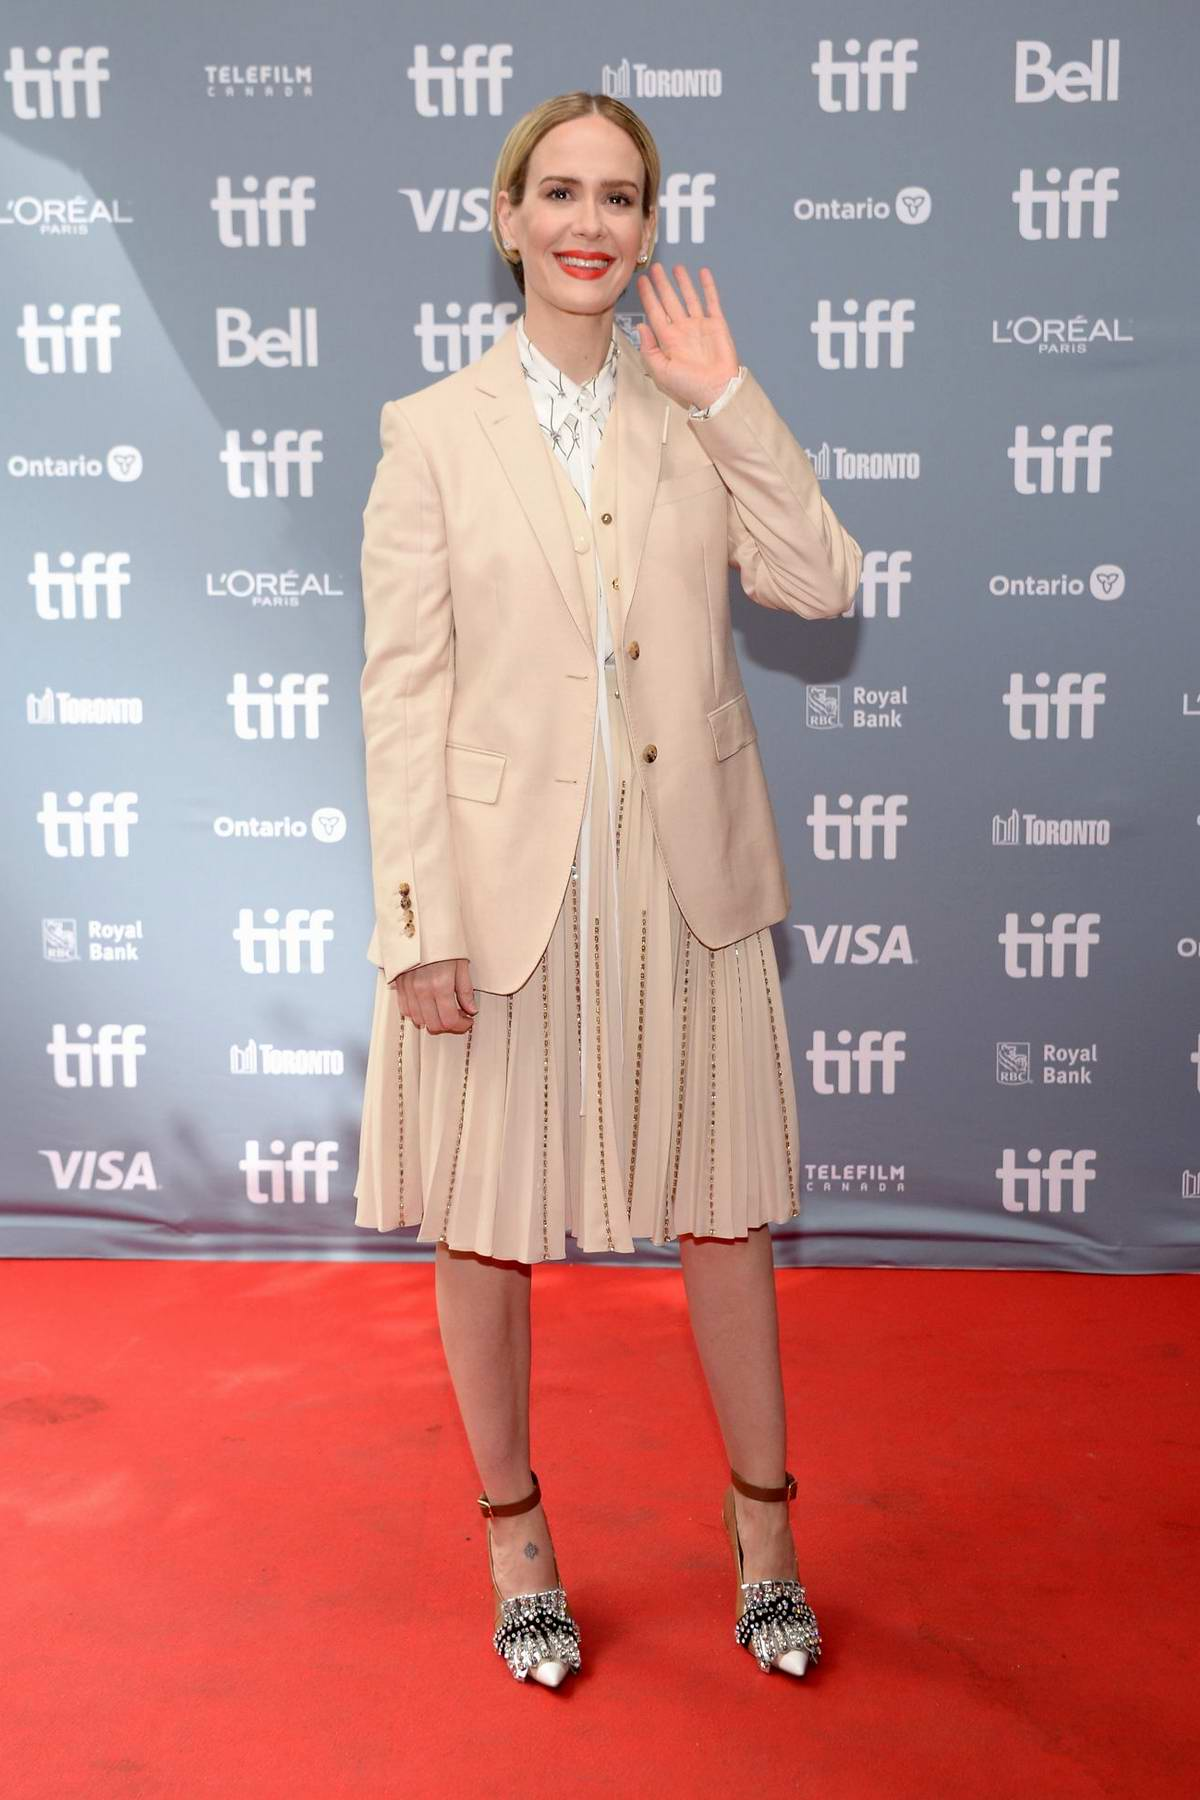 Sarah Paulson attends 'The Goldfinch' press conference during the 2019 Toronto International Film Festival in Toronto, Canada